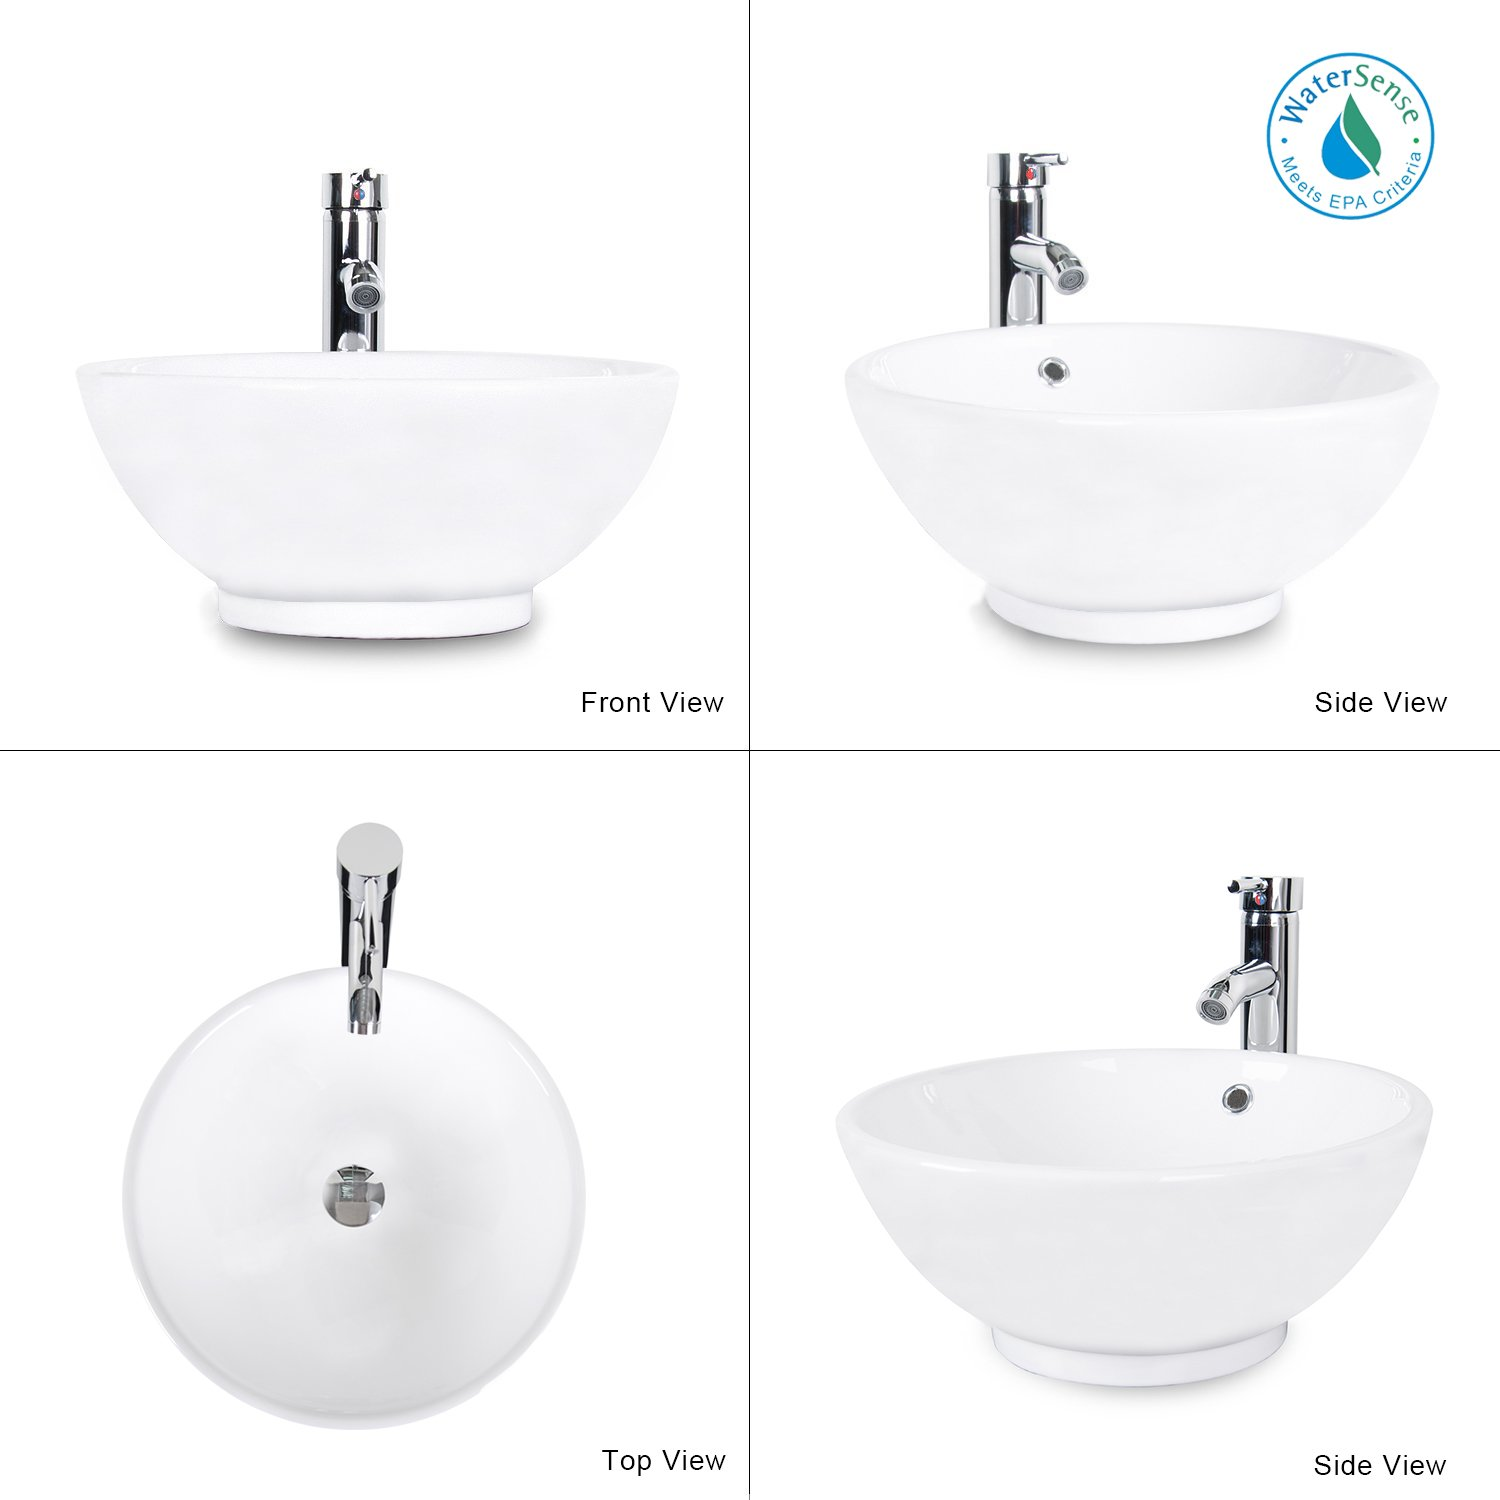 Bathroom sink top view - Eclife 24 Modern Bathroom Vanity And Sink Combo Updates Stand Cabinet And White Round Ceramic Vessel Sink With Overflow And Chrome Bathroom Solid Brass